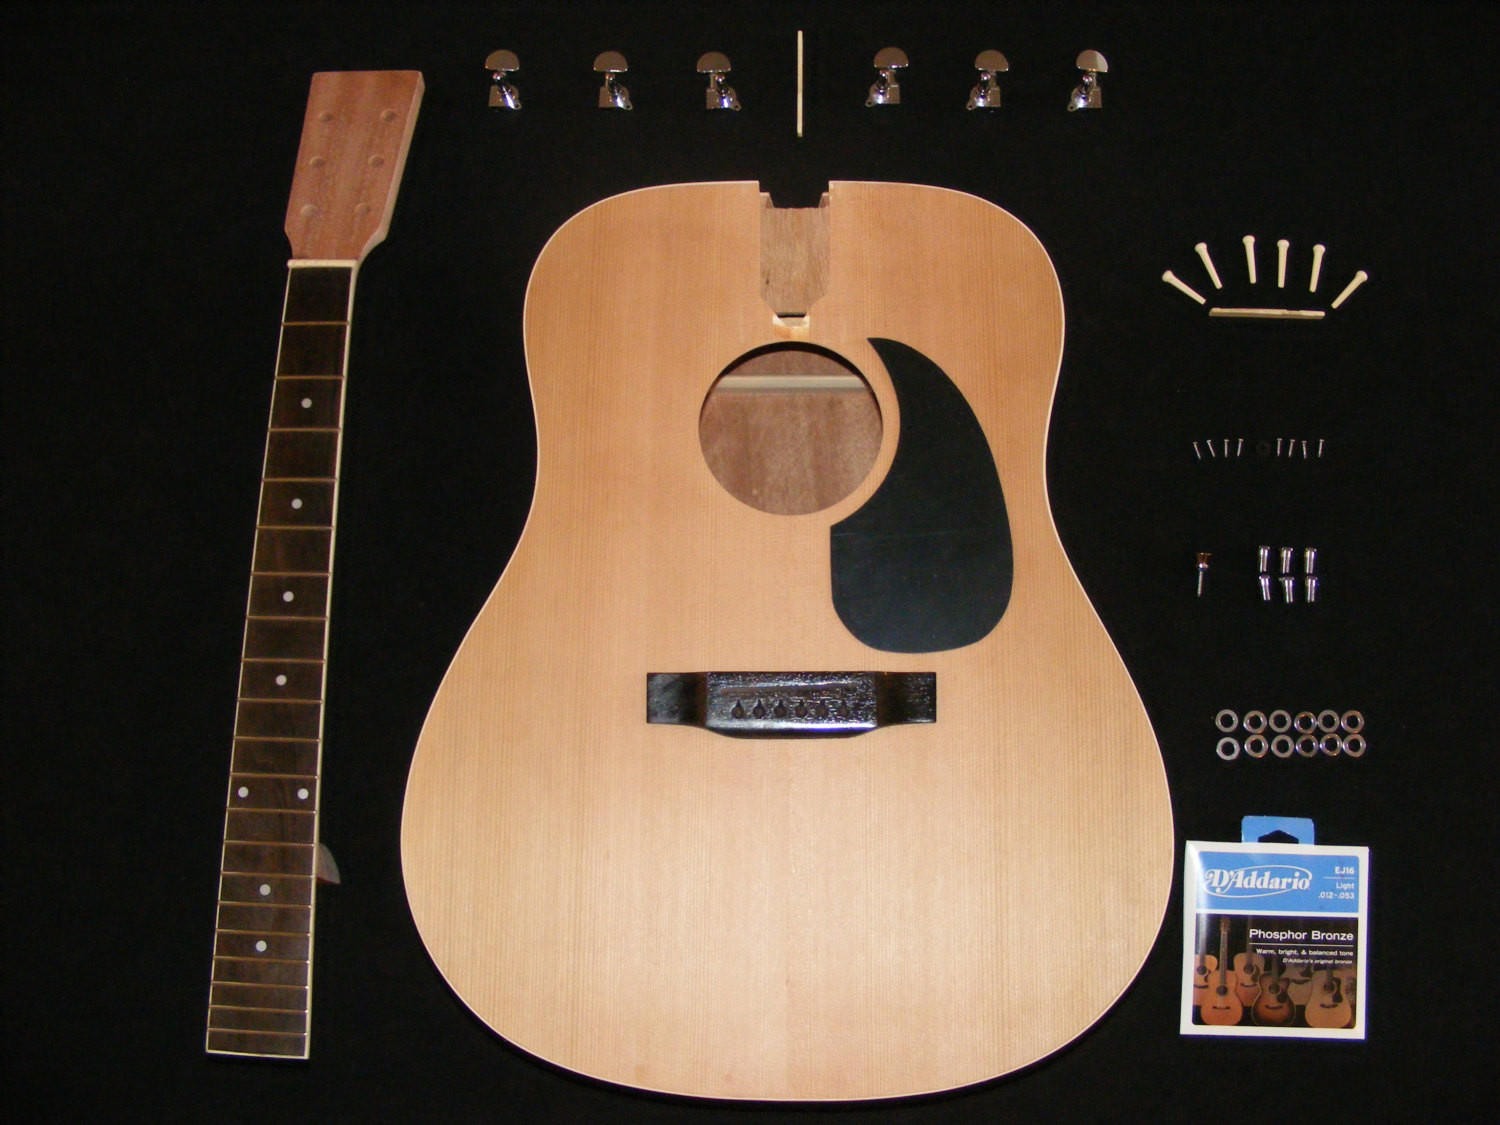 Best ideas about DIY Acoustic Guitar Kits . Save or Pin DIY Acoustic Guitar Kit by CitharaGuitars on Etsy Now.